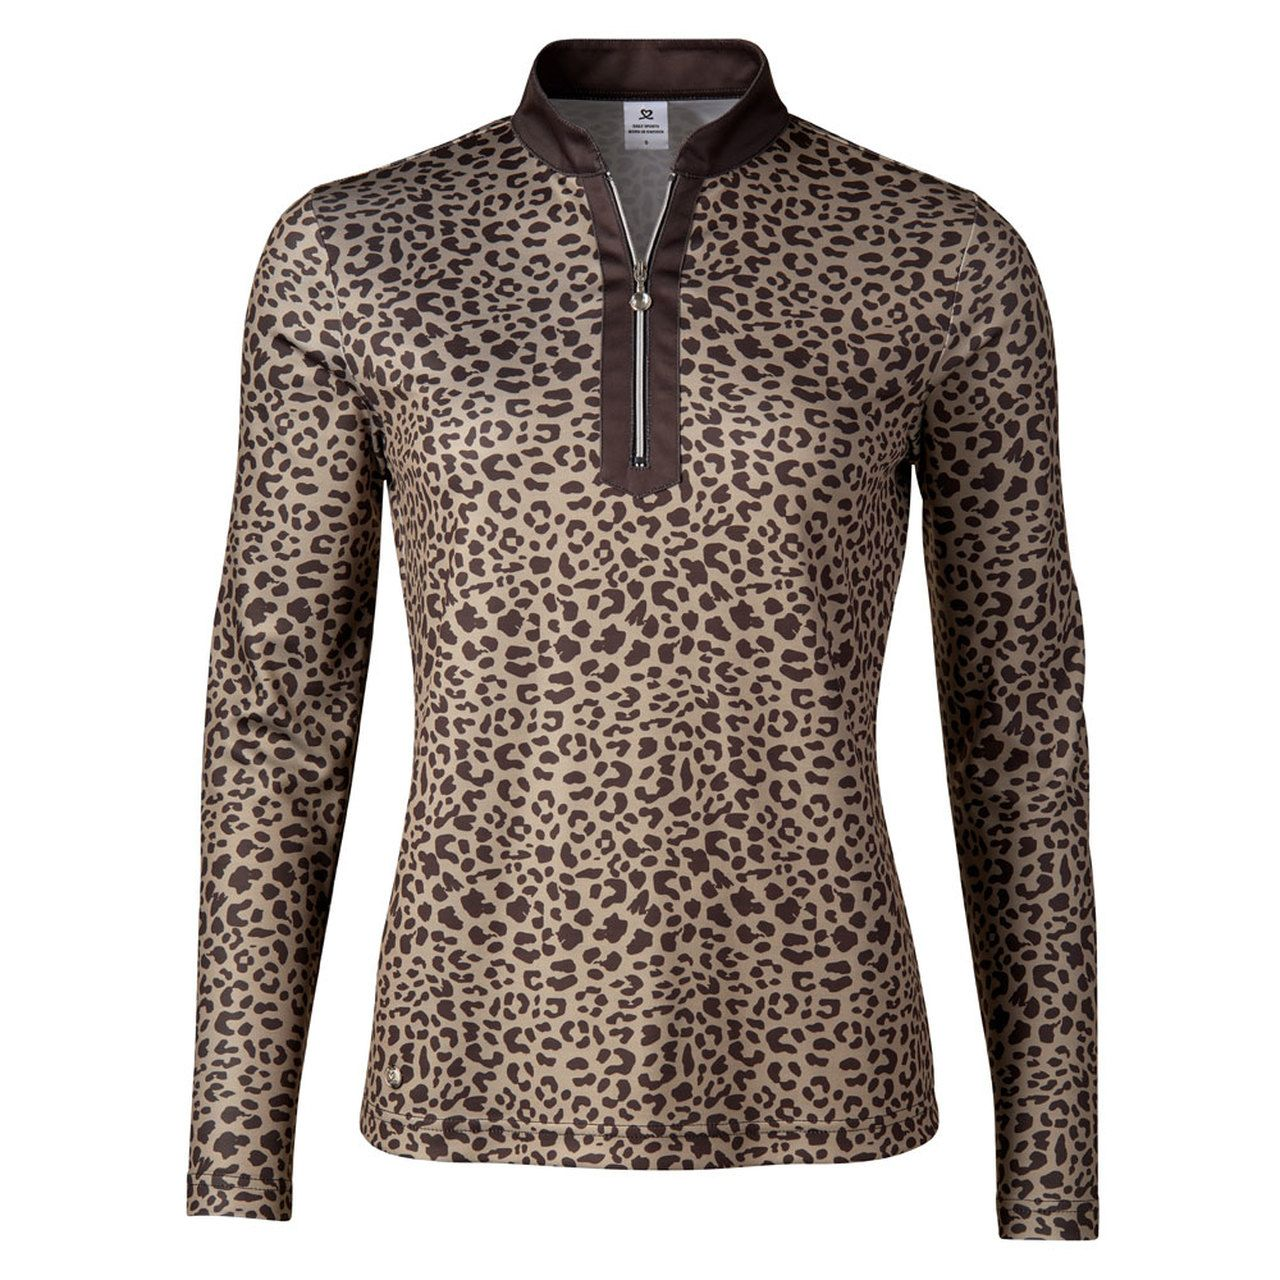 Be the envy of your friends in this animal print top from